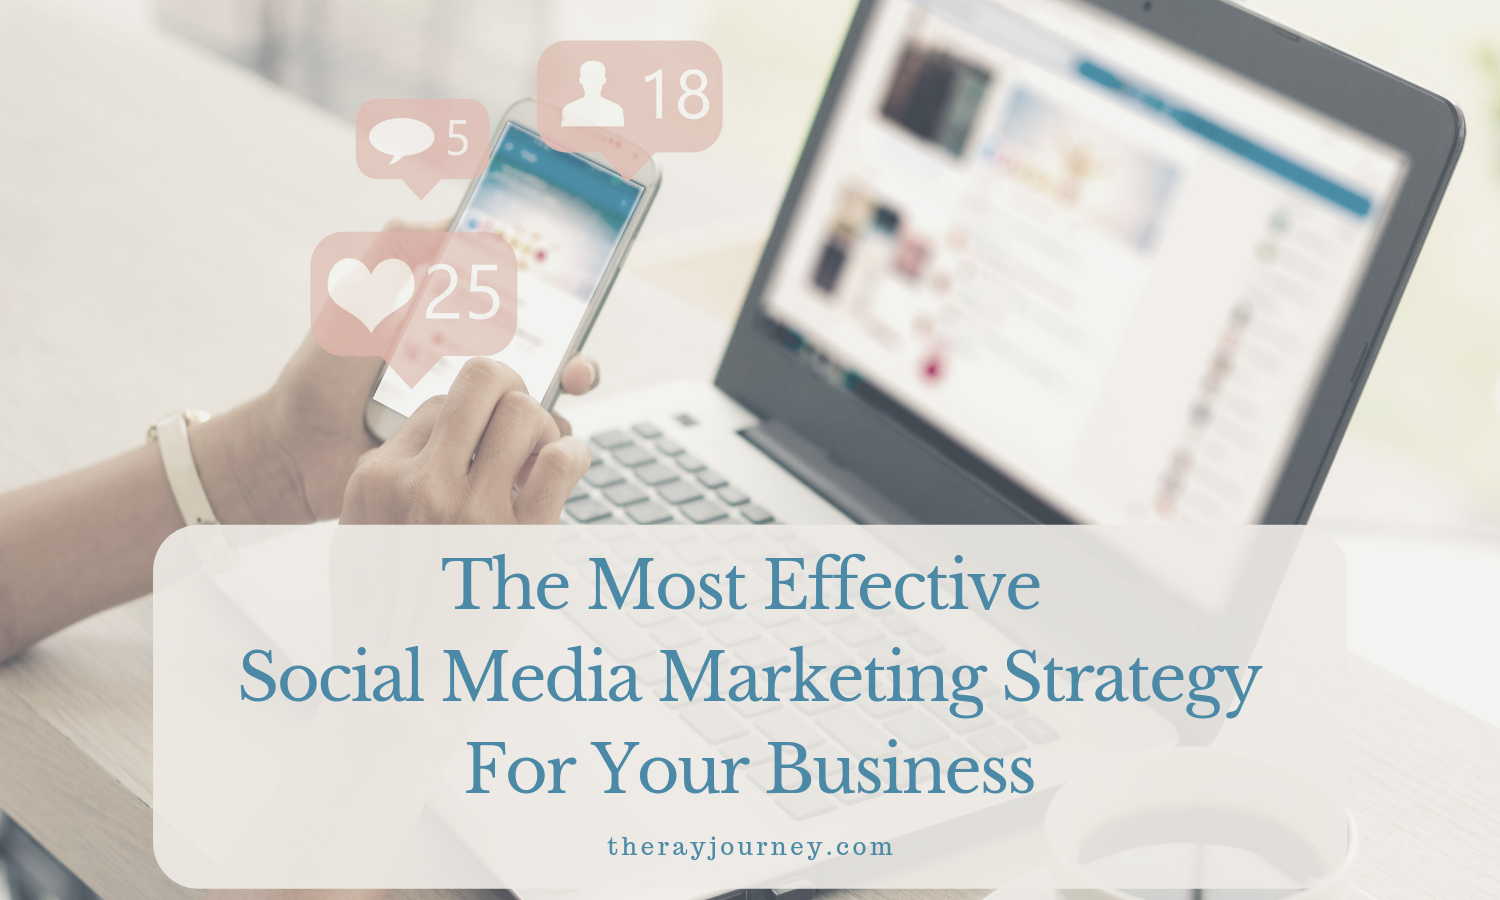 The Most Effective Social Media Marketing Strategy For Your Business